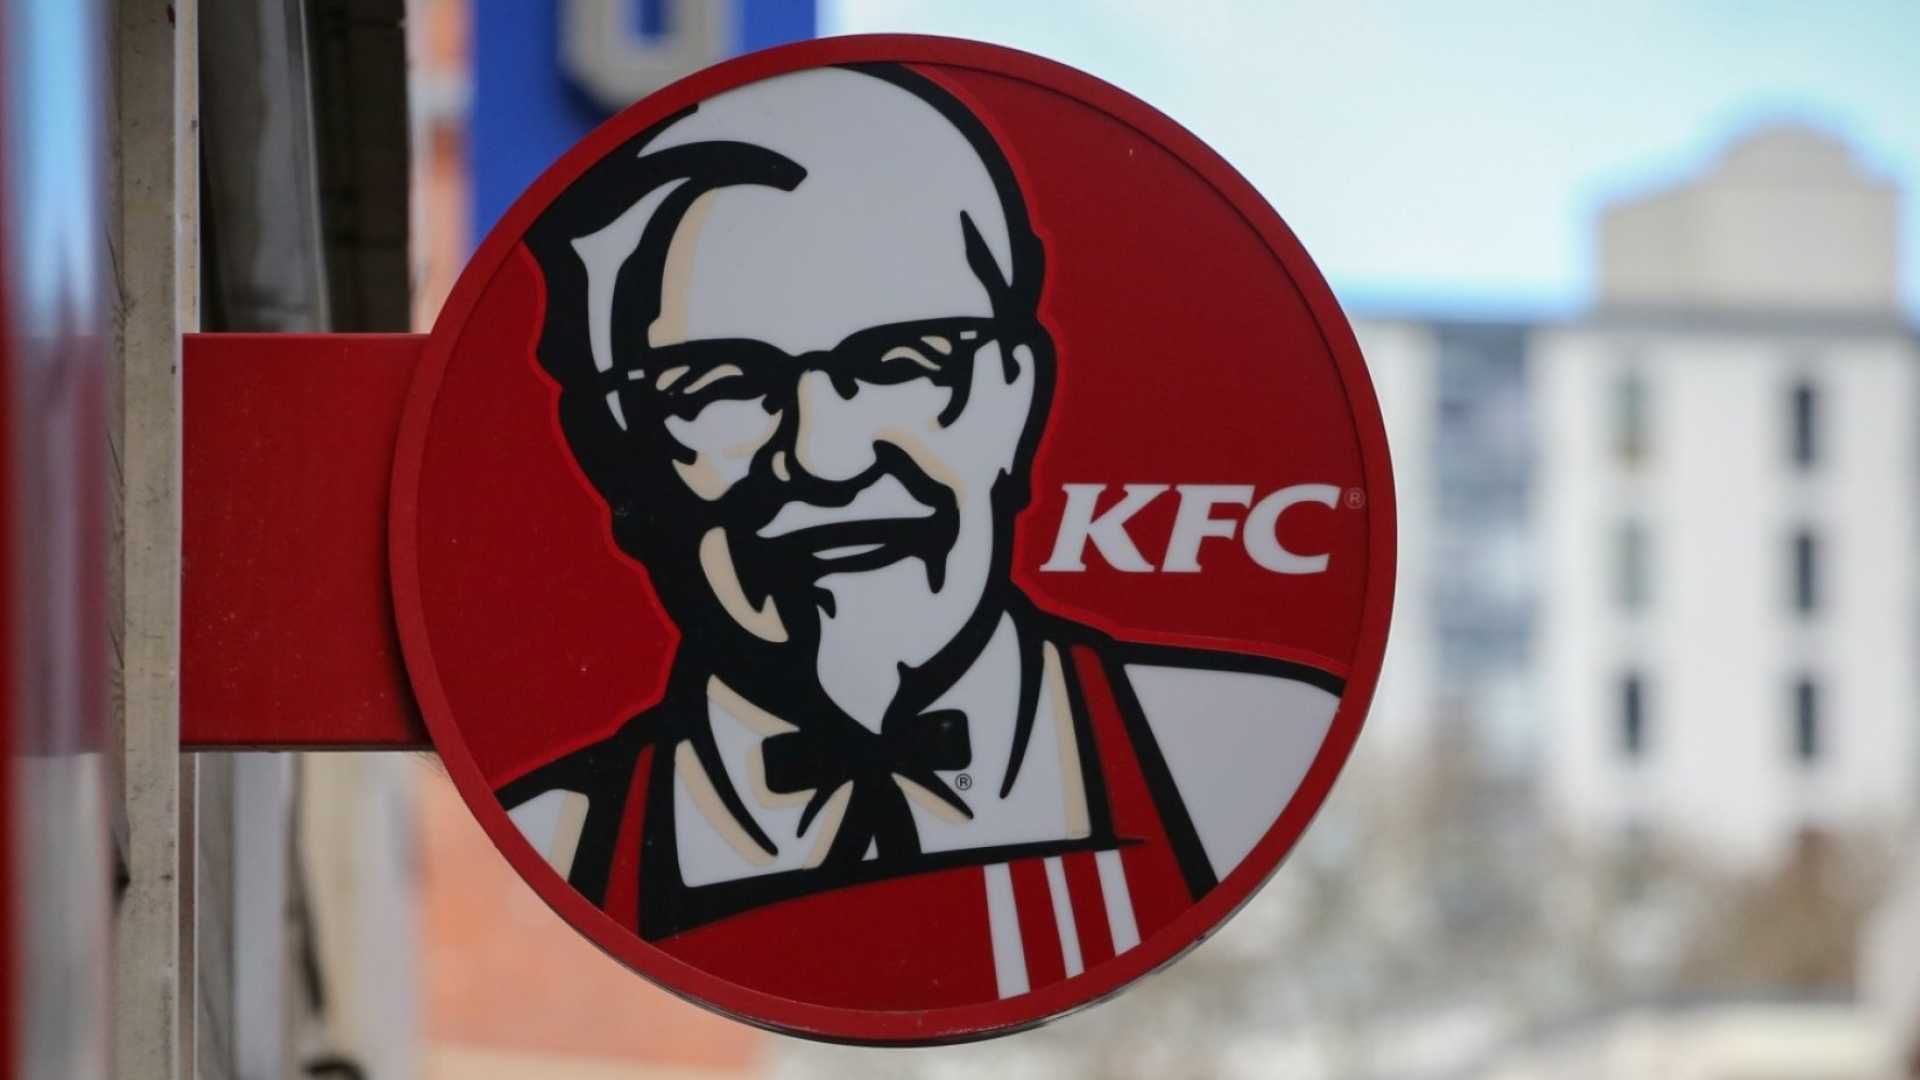 The colonel may be more erudite than you think. Even more erudite, that is.